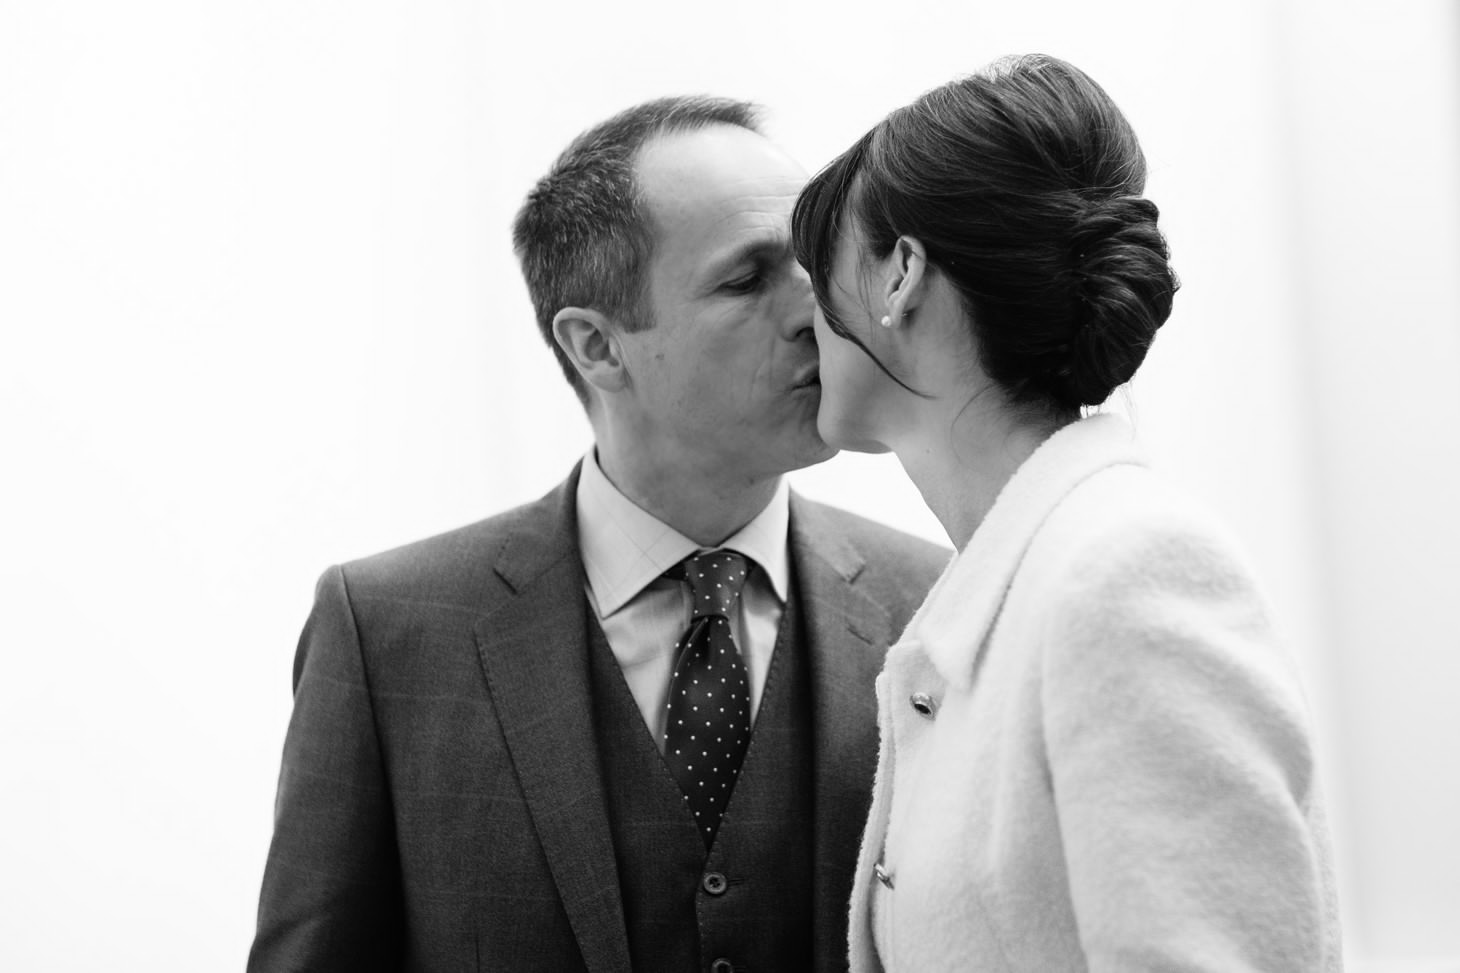 nyc-authentic-emotional-wedding-photography-elopement-smitten-chickens-photo18.jpg